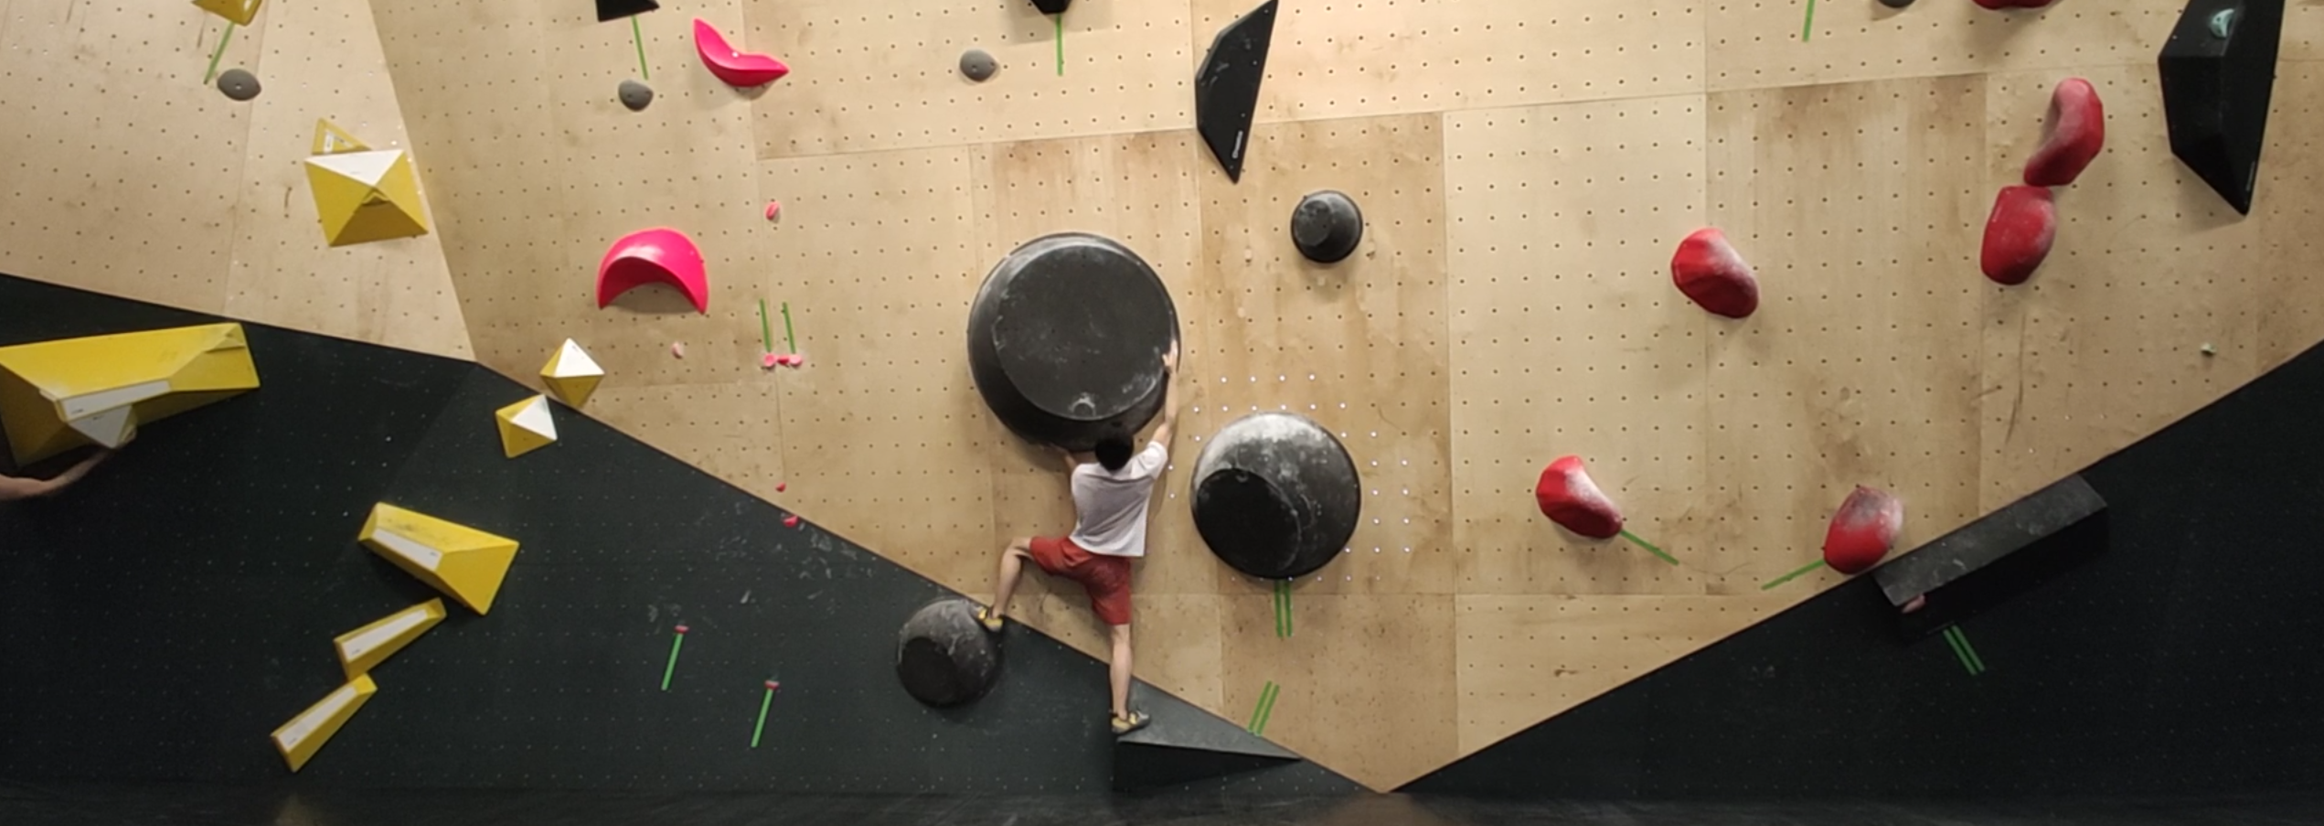 Better bouldering with POF!ZAK